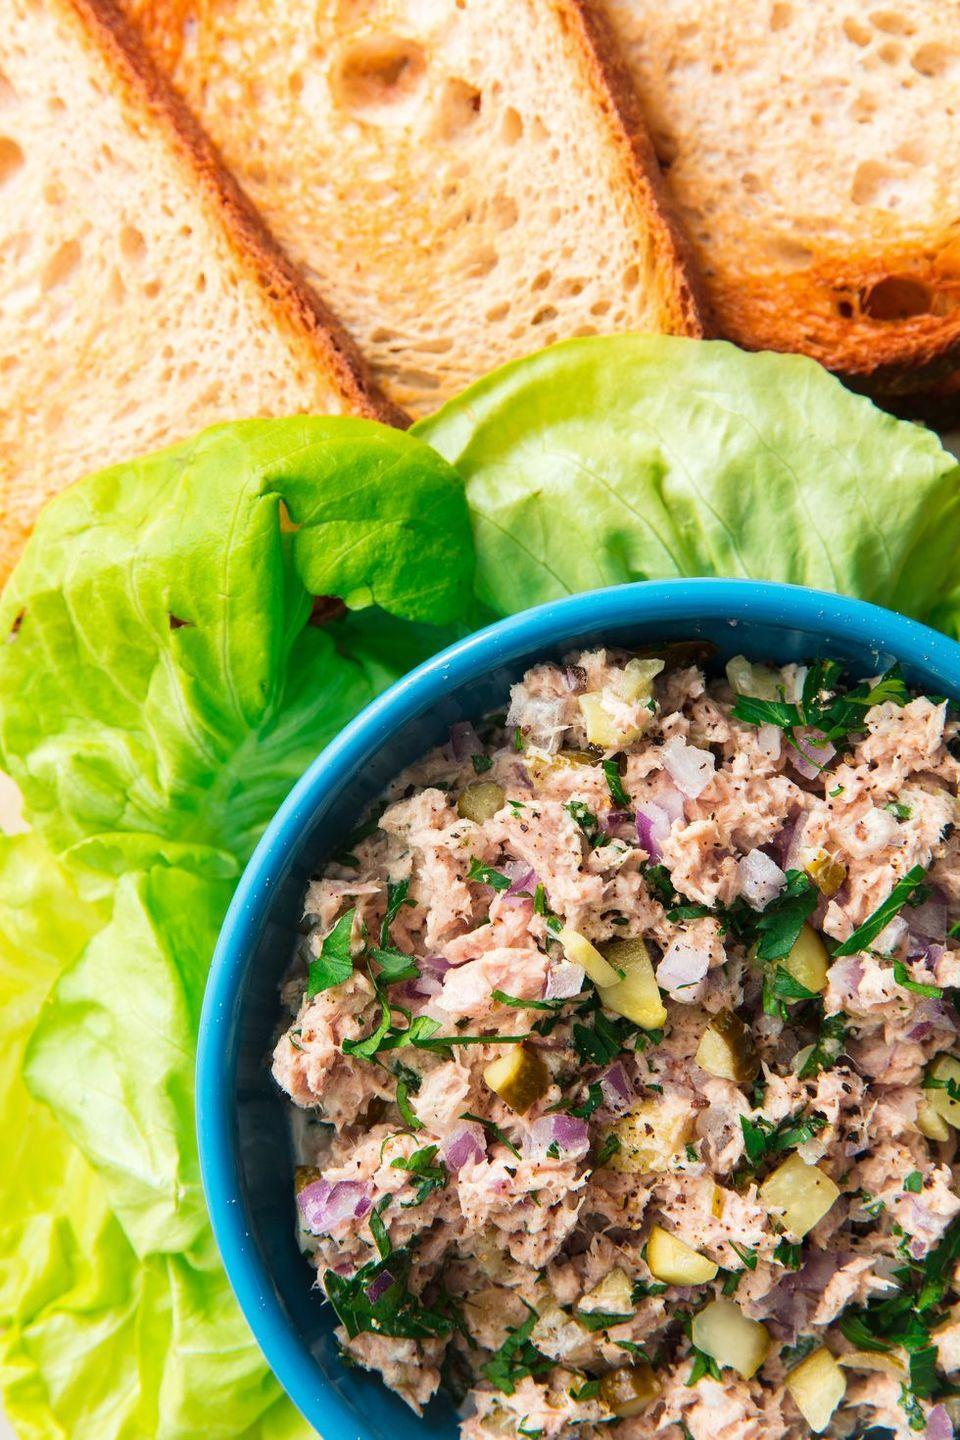 """<p>When a recipe is this good, it doesn't matter what your desk neighbours think.</p><p>Get the <a href=""""https://www.delish.com/uk/cooking/recipes/a30426006/best-tuna-salad-recipe/"""" rel=""""nofollow noopener"""" target=""""_blank"""" data-ylk=""""slk:Tuna Salad"""" class=""""link rapid-noclick-resp"""">Tuna Salad</a> recipe.</p>"""